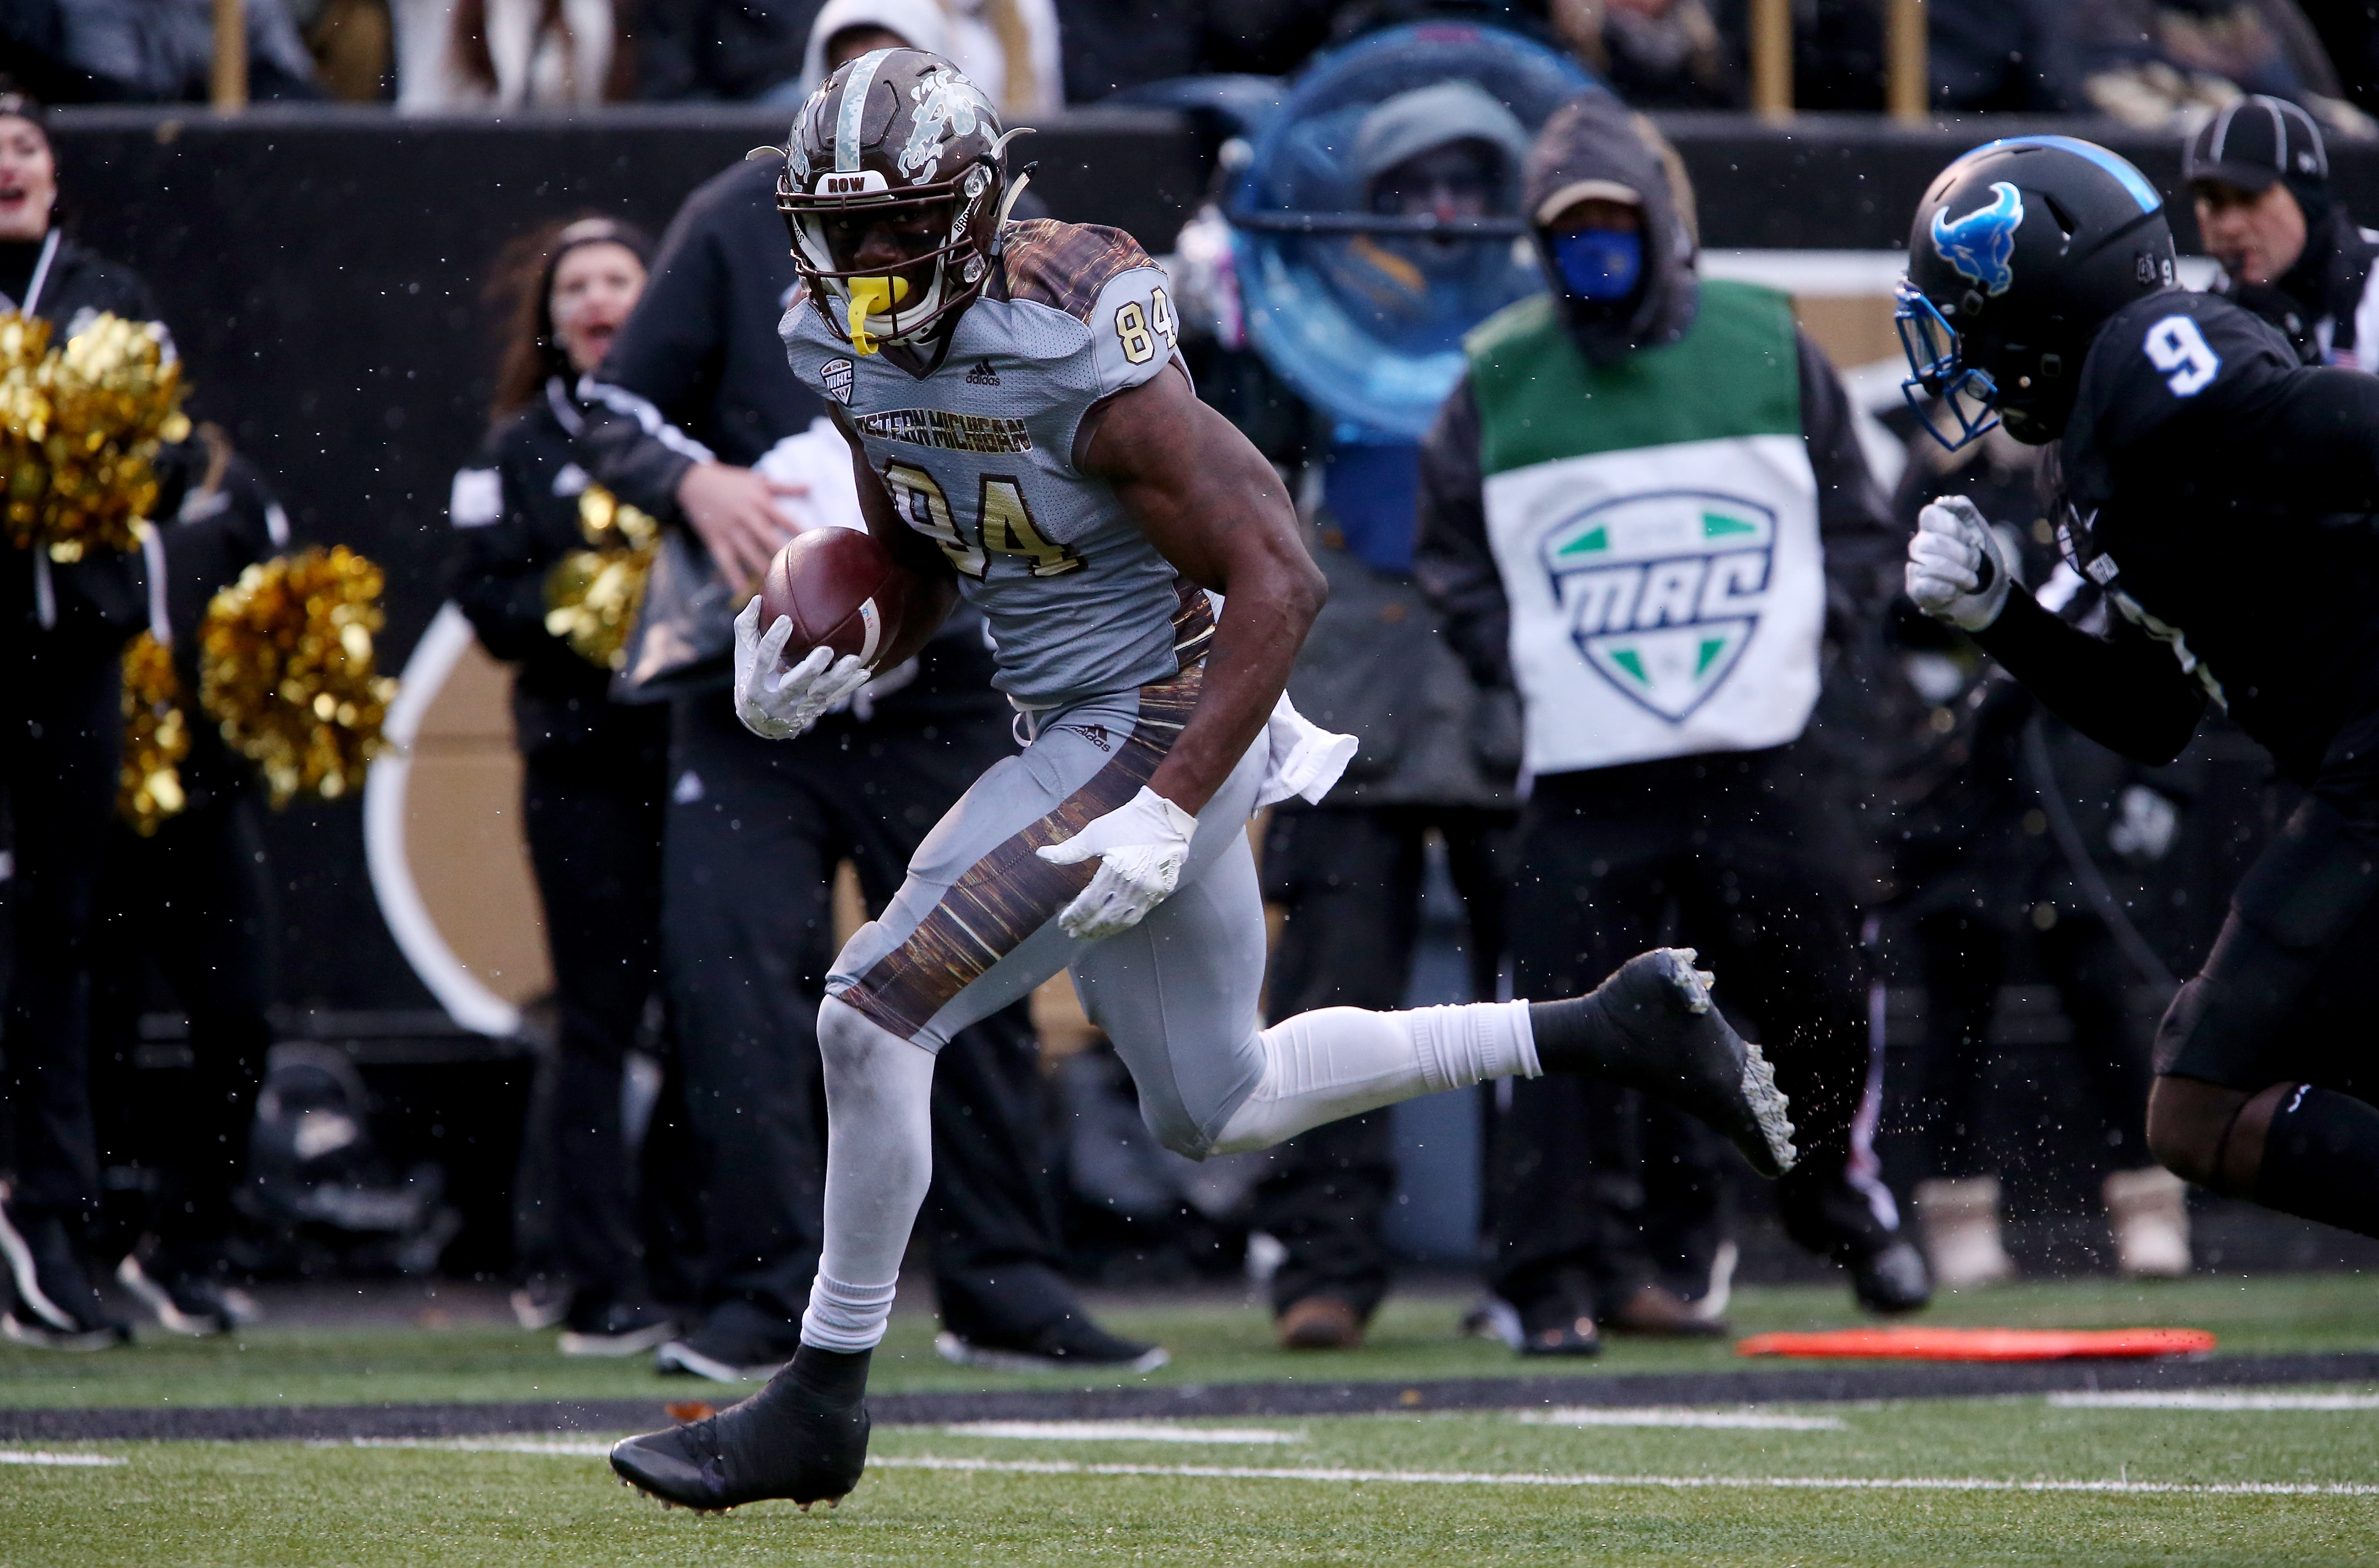 Western Michigan wide receiver Corey Davis, seen here playing against the University at Buffalo in 2016, dominated the Mid-American Conference. (Getty Images)